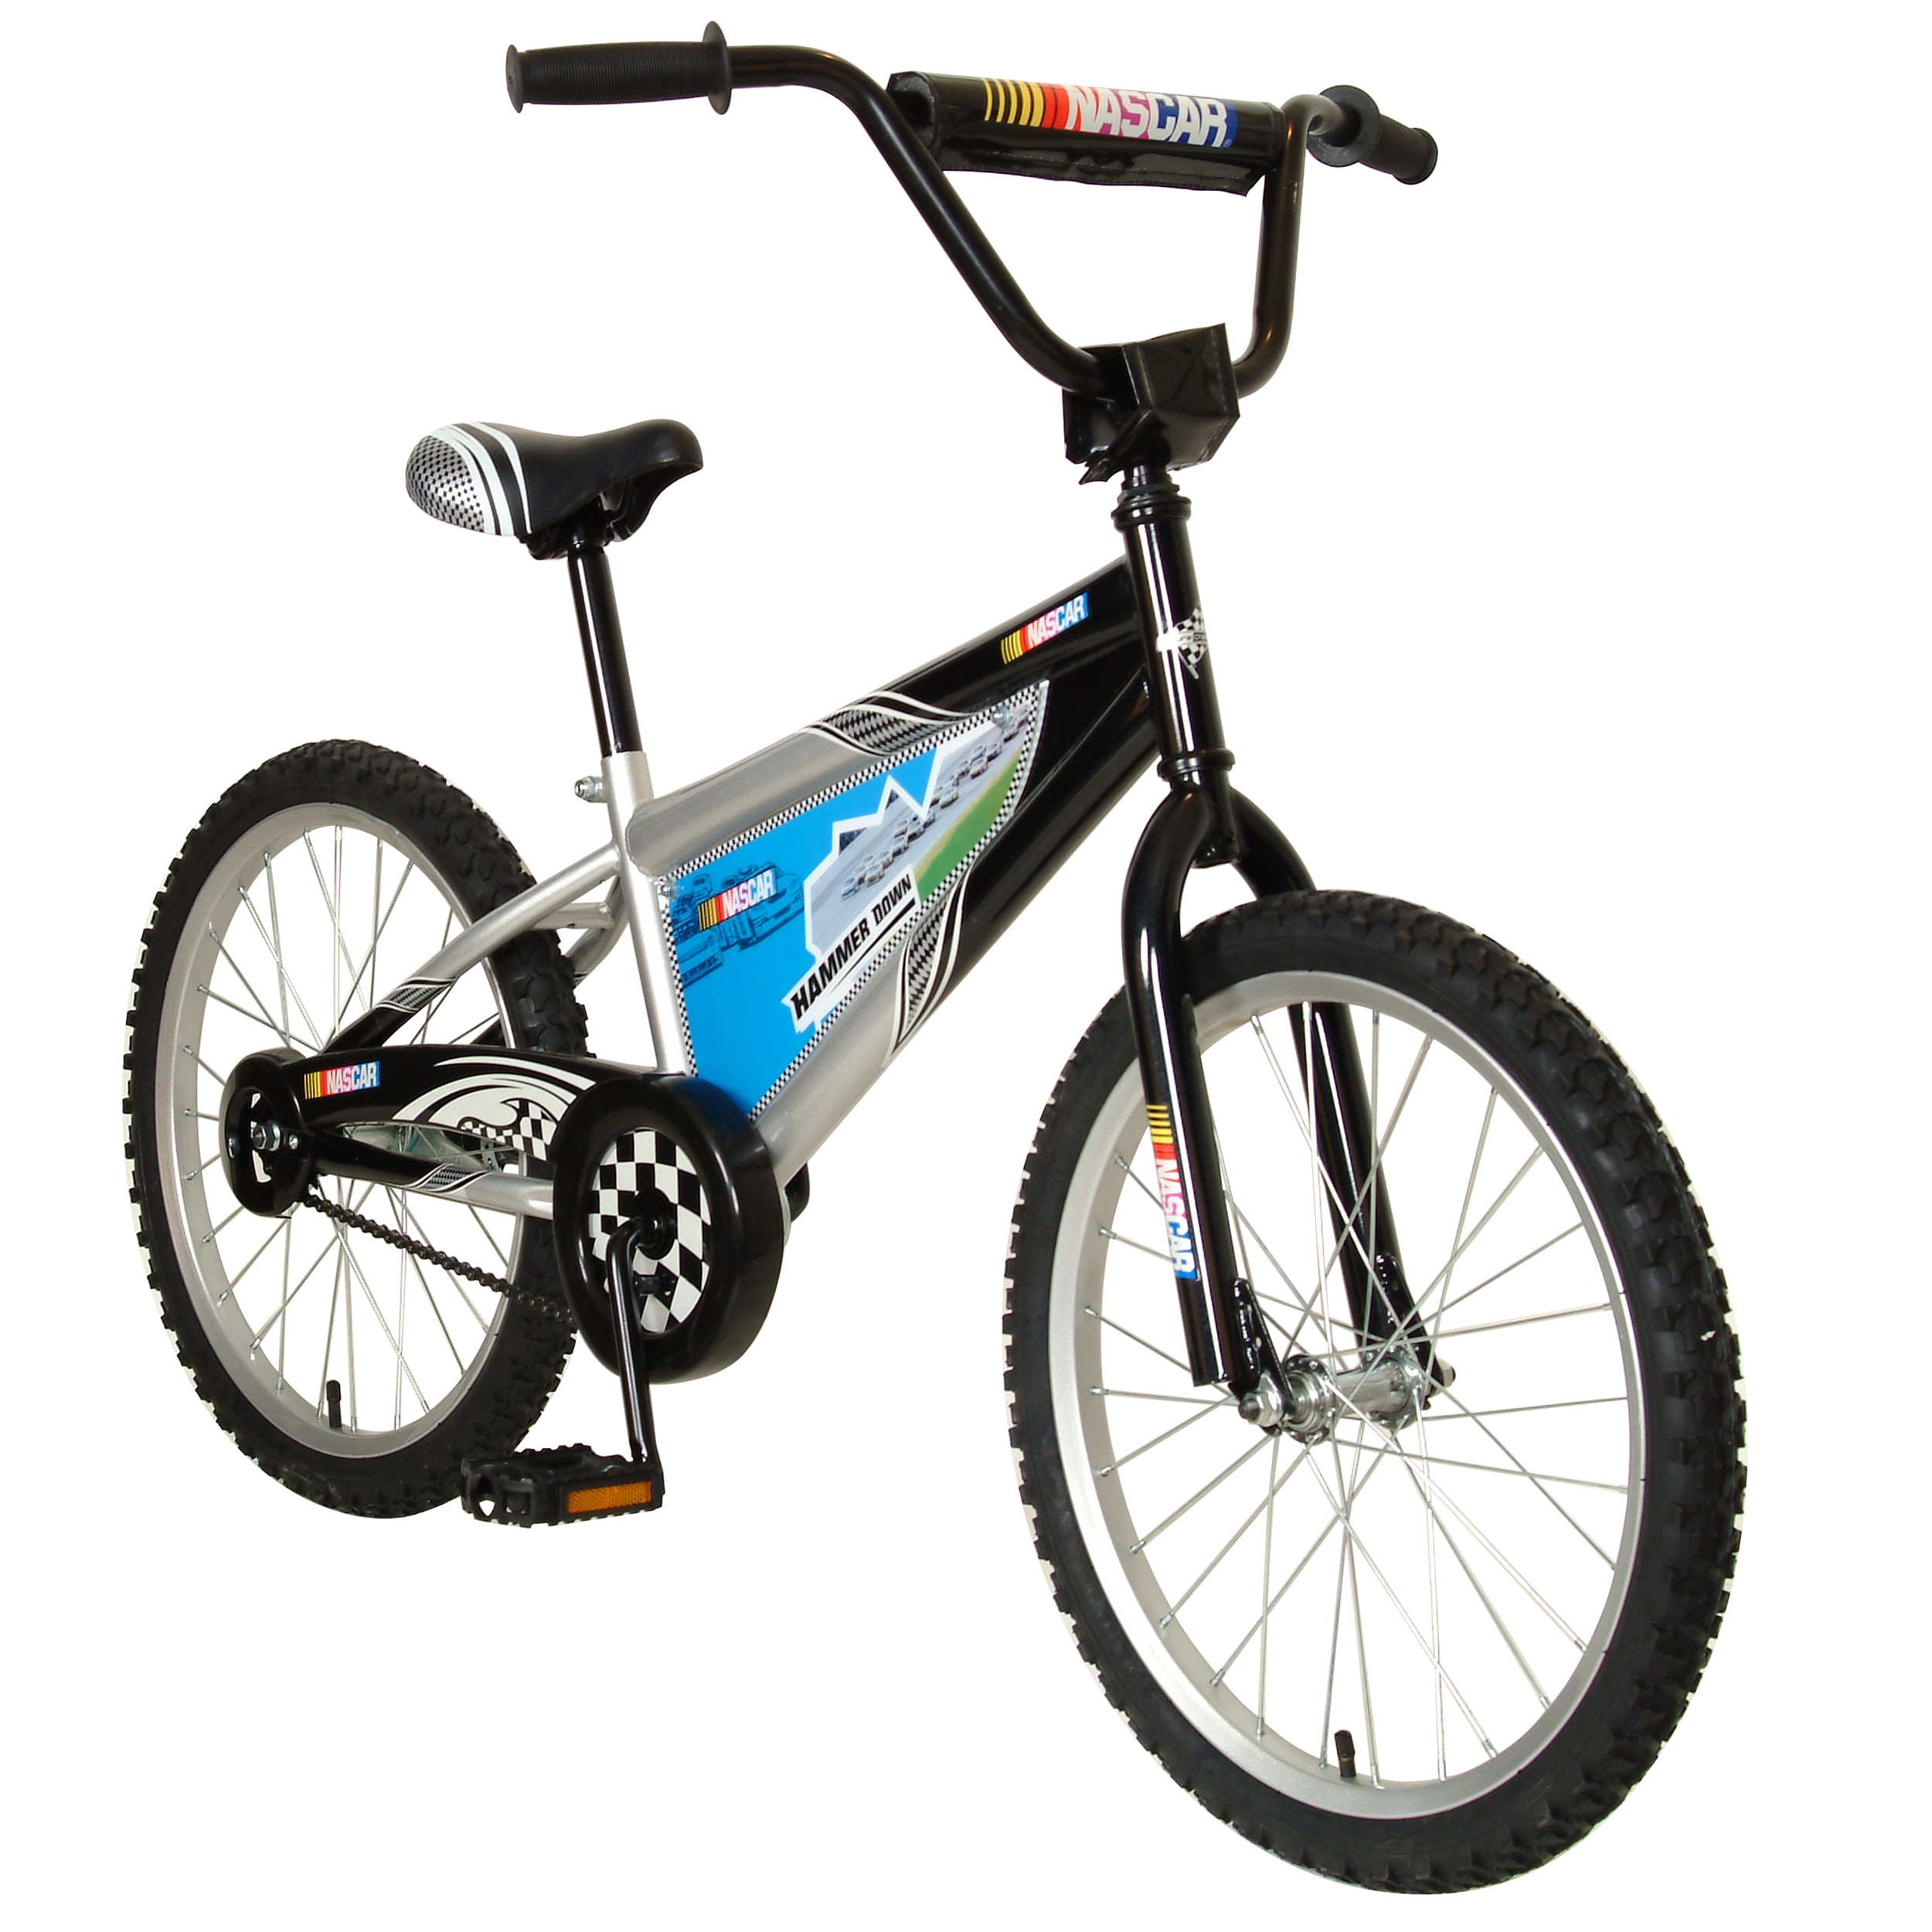 "NASCAR Hammer Down 20"" Youth BMX Bike"